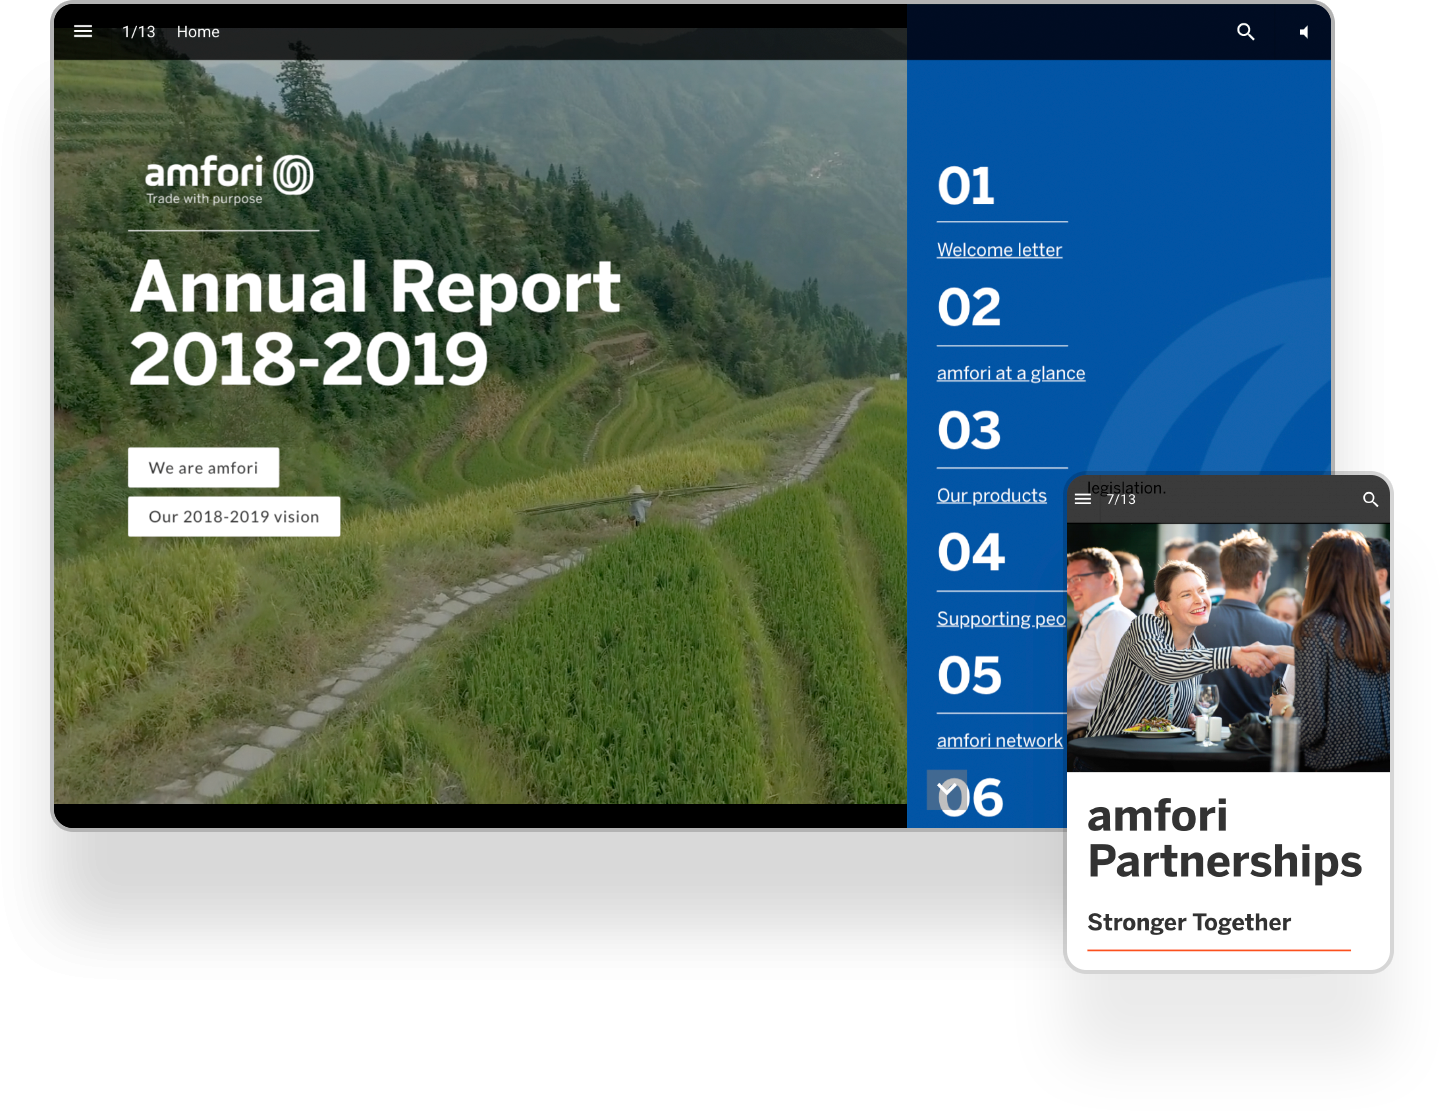 interactive-example-annualreport-amfori-1